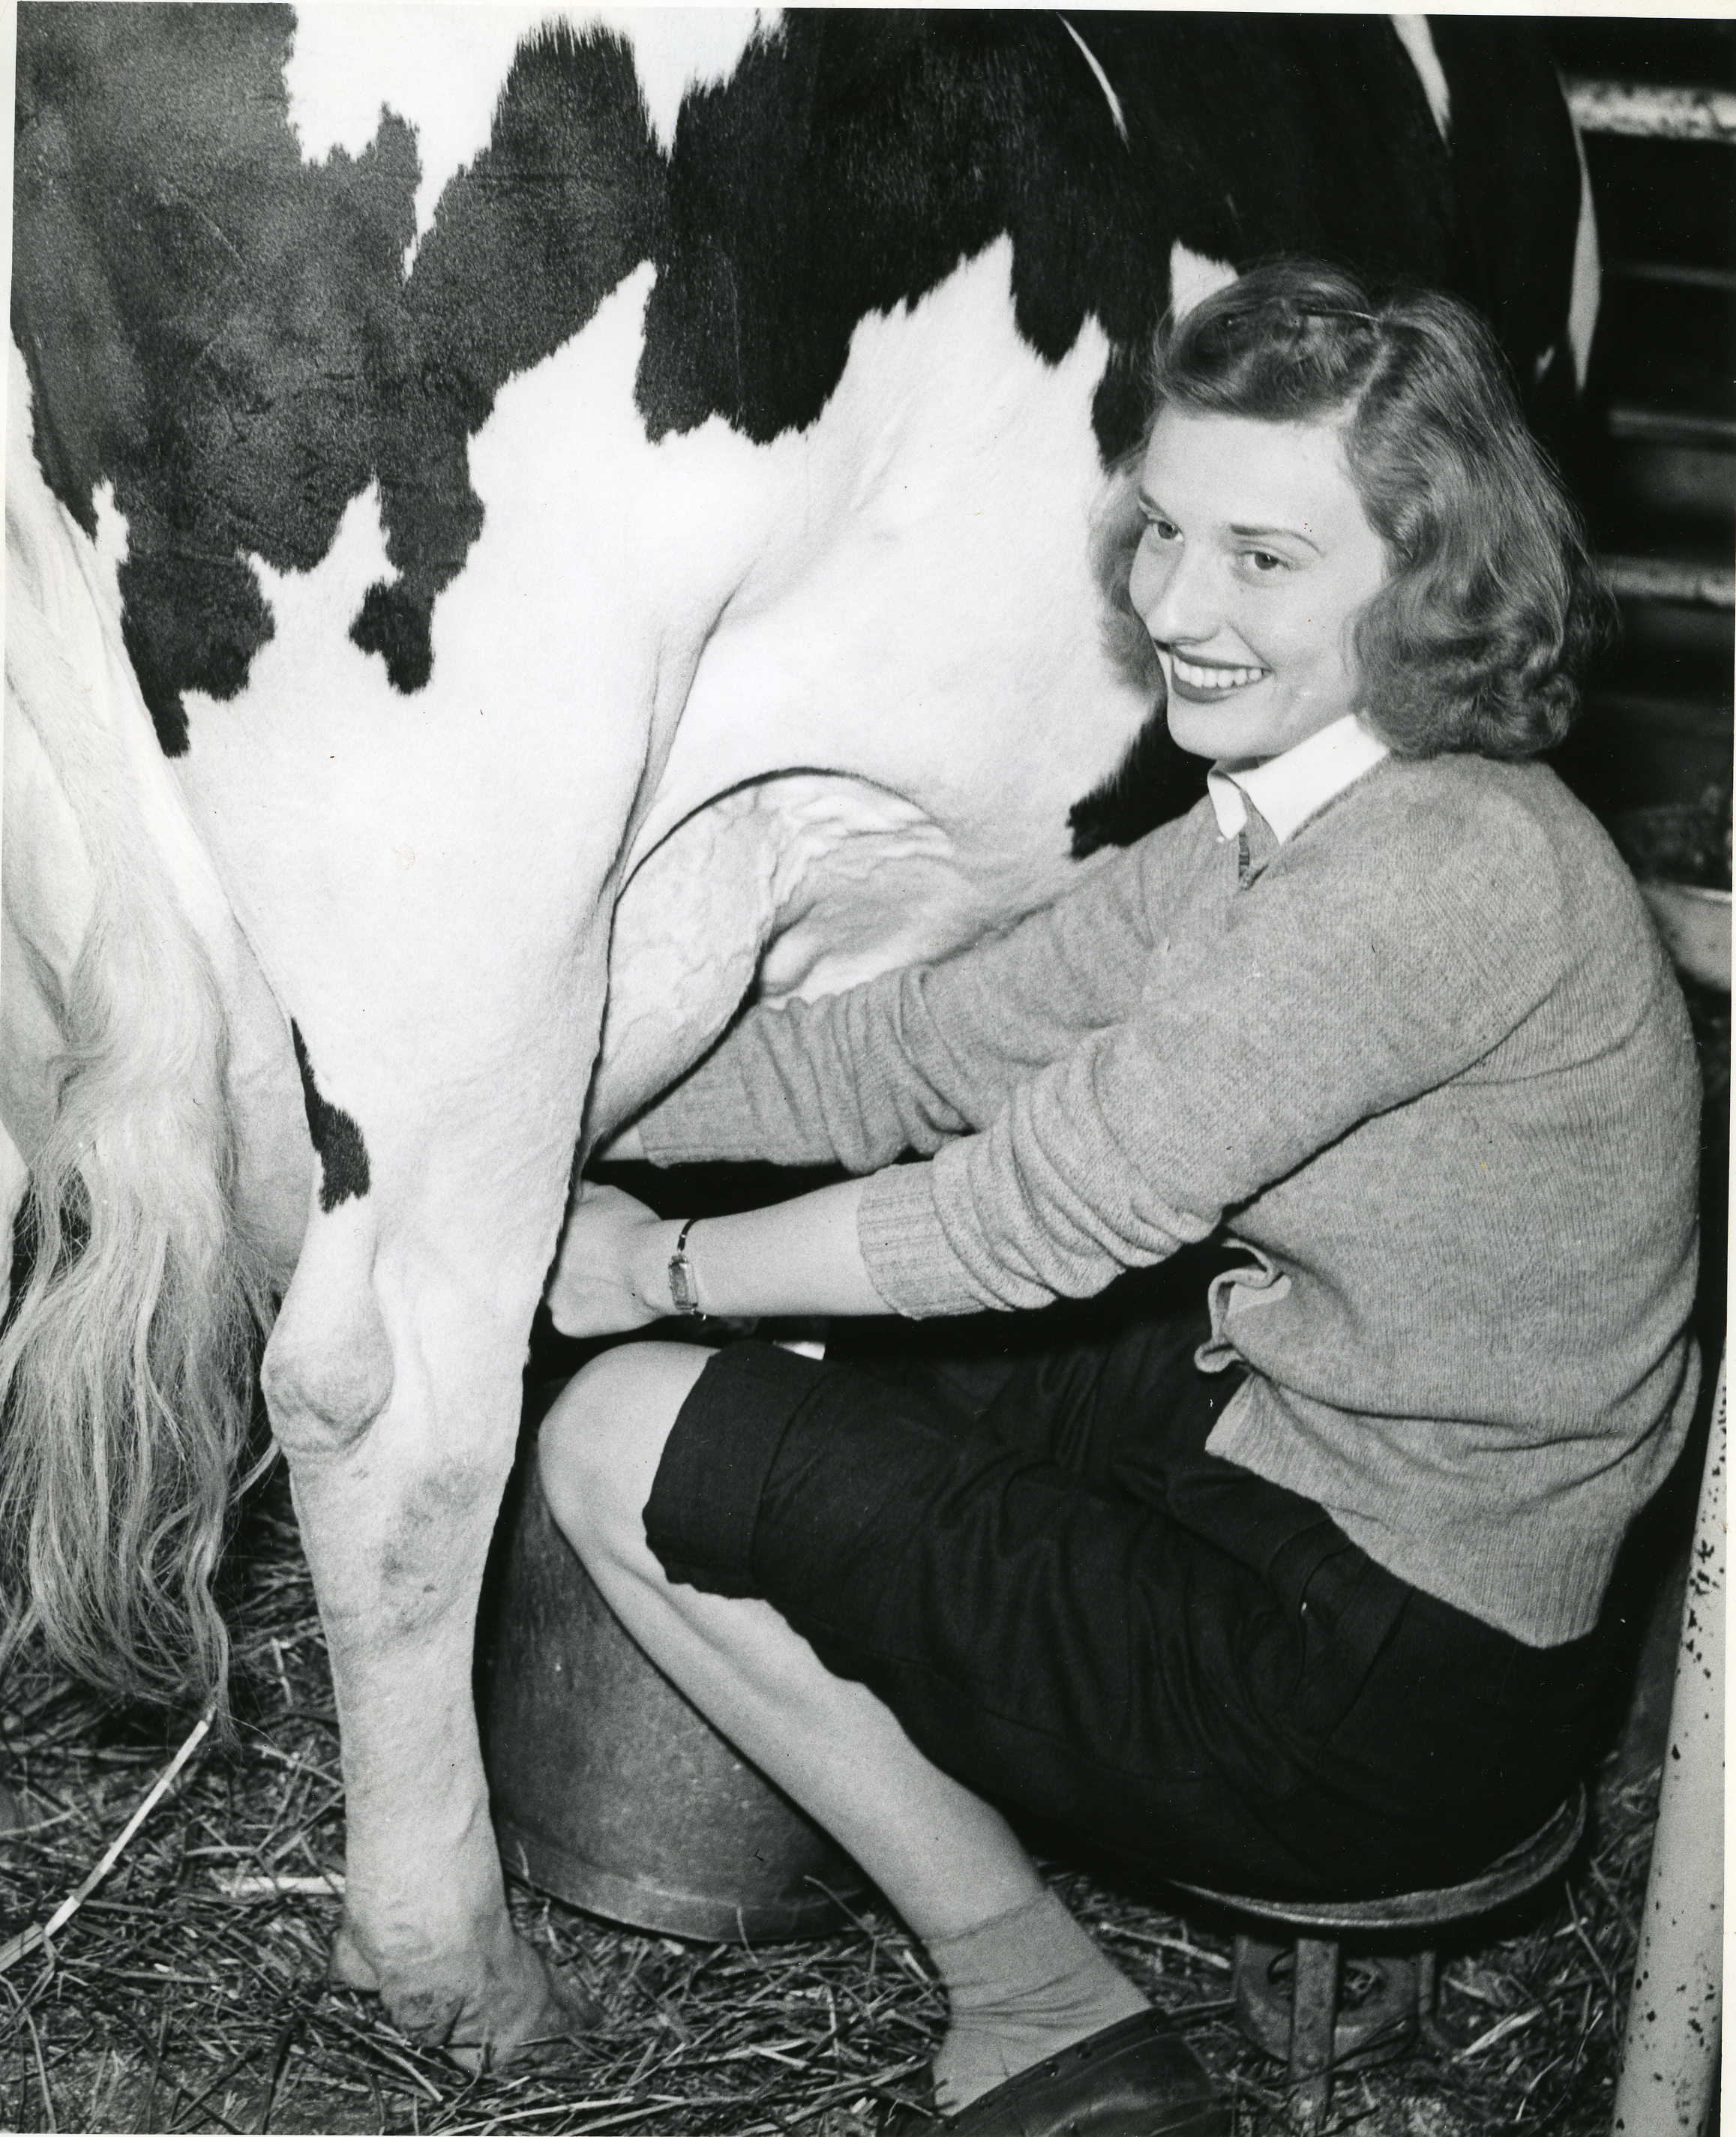 Milking a woman like a cow